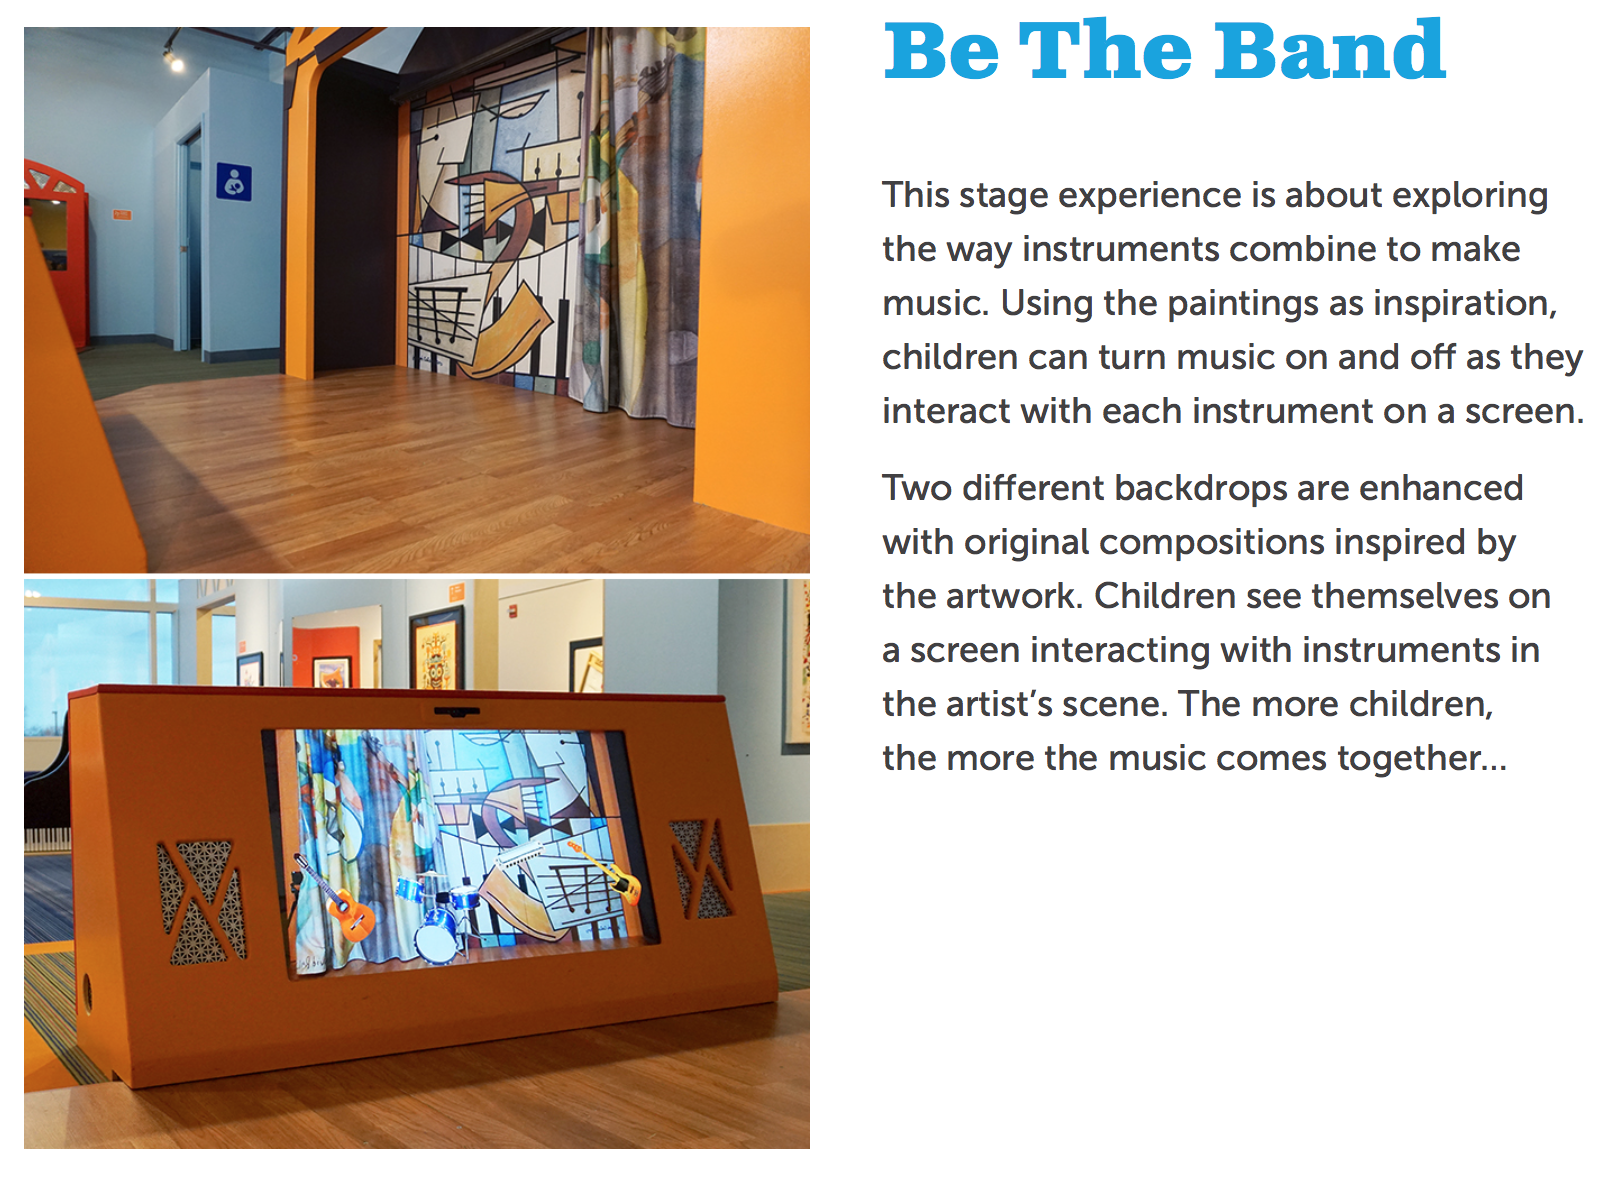 Be The Band - DuPage Children's Museum